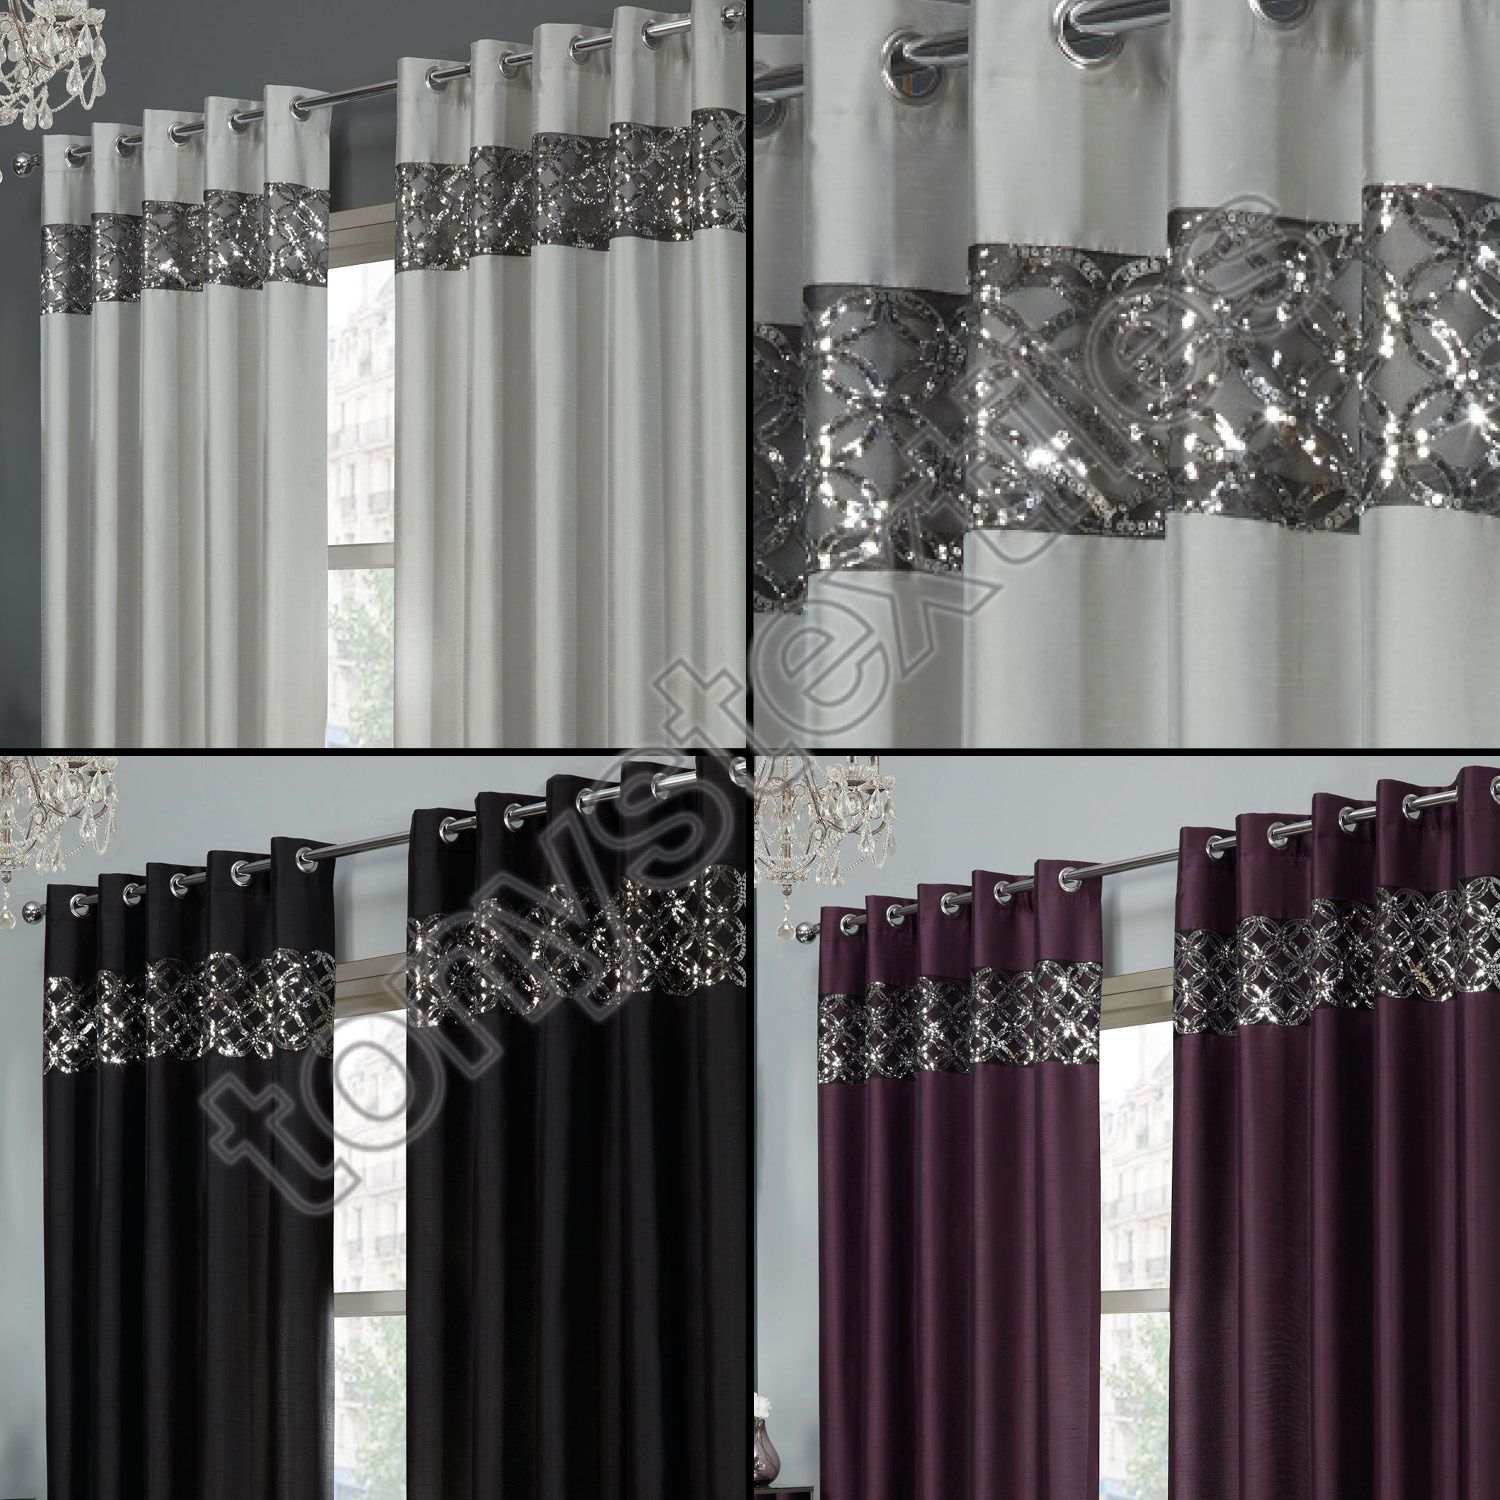 Tony S Textiles Rio Curtain Panels With Grommets Embroidered Sequins Border Ebay Silver Curtains Black And Silver Curtains Curtains